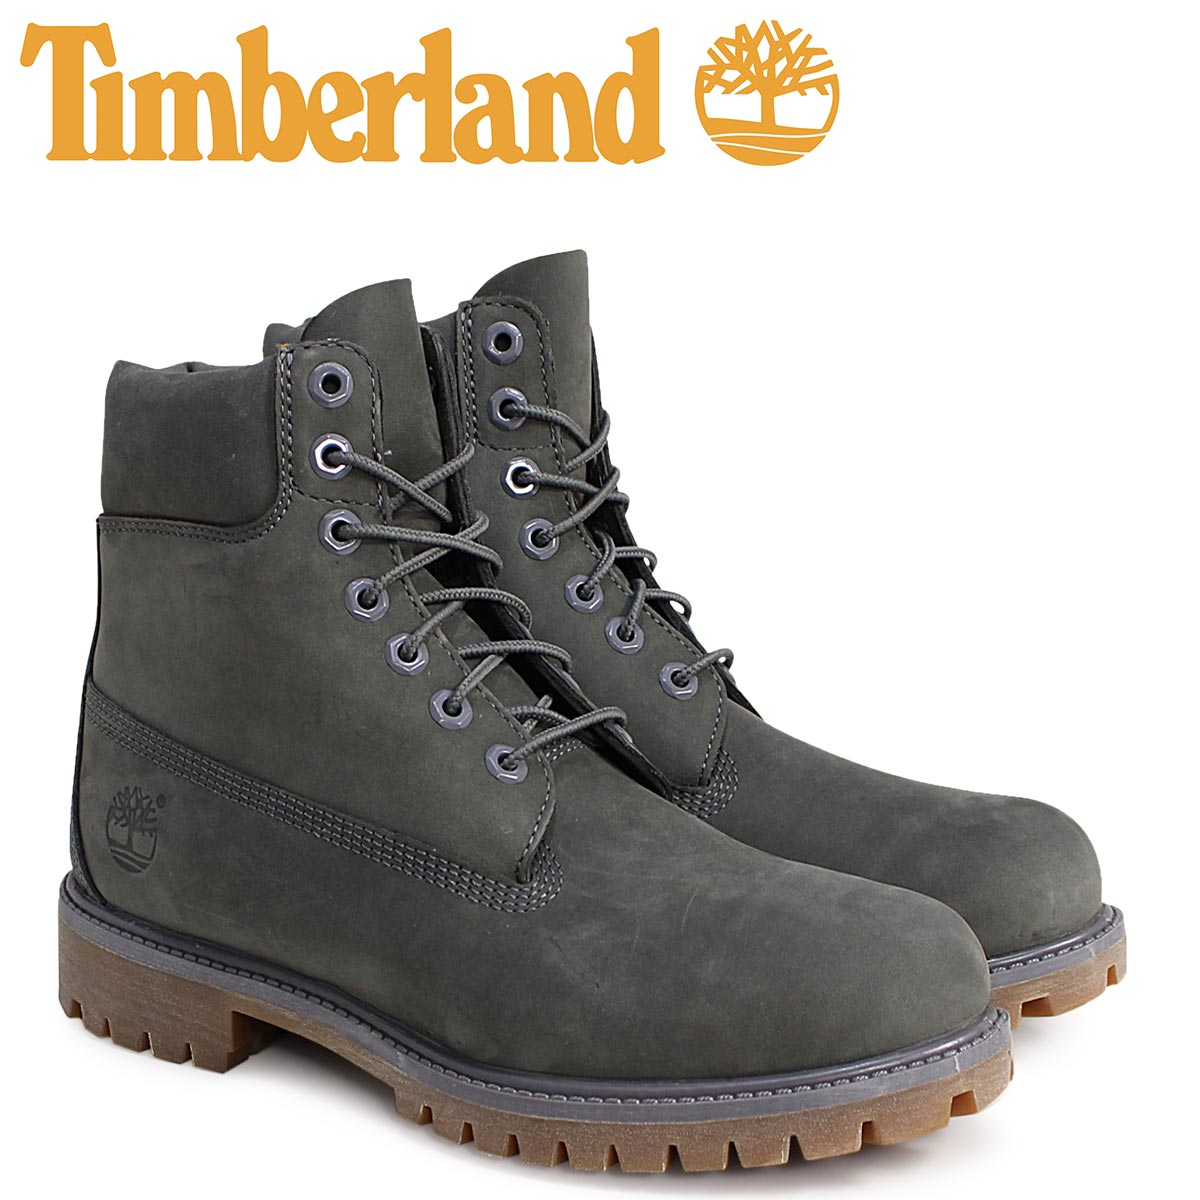 f1ab7a93b666d Timberland timberland 6 inches premium boots men 6INCHI 6-INCH PREMIUM  WATERPLOOF BOOTS A114K gray waterproofing  12 16 Shinnyu load